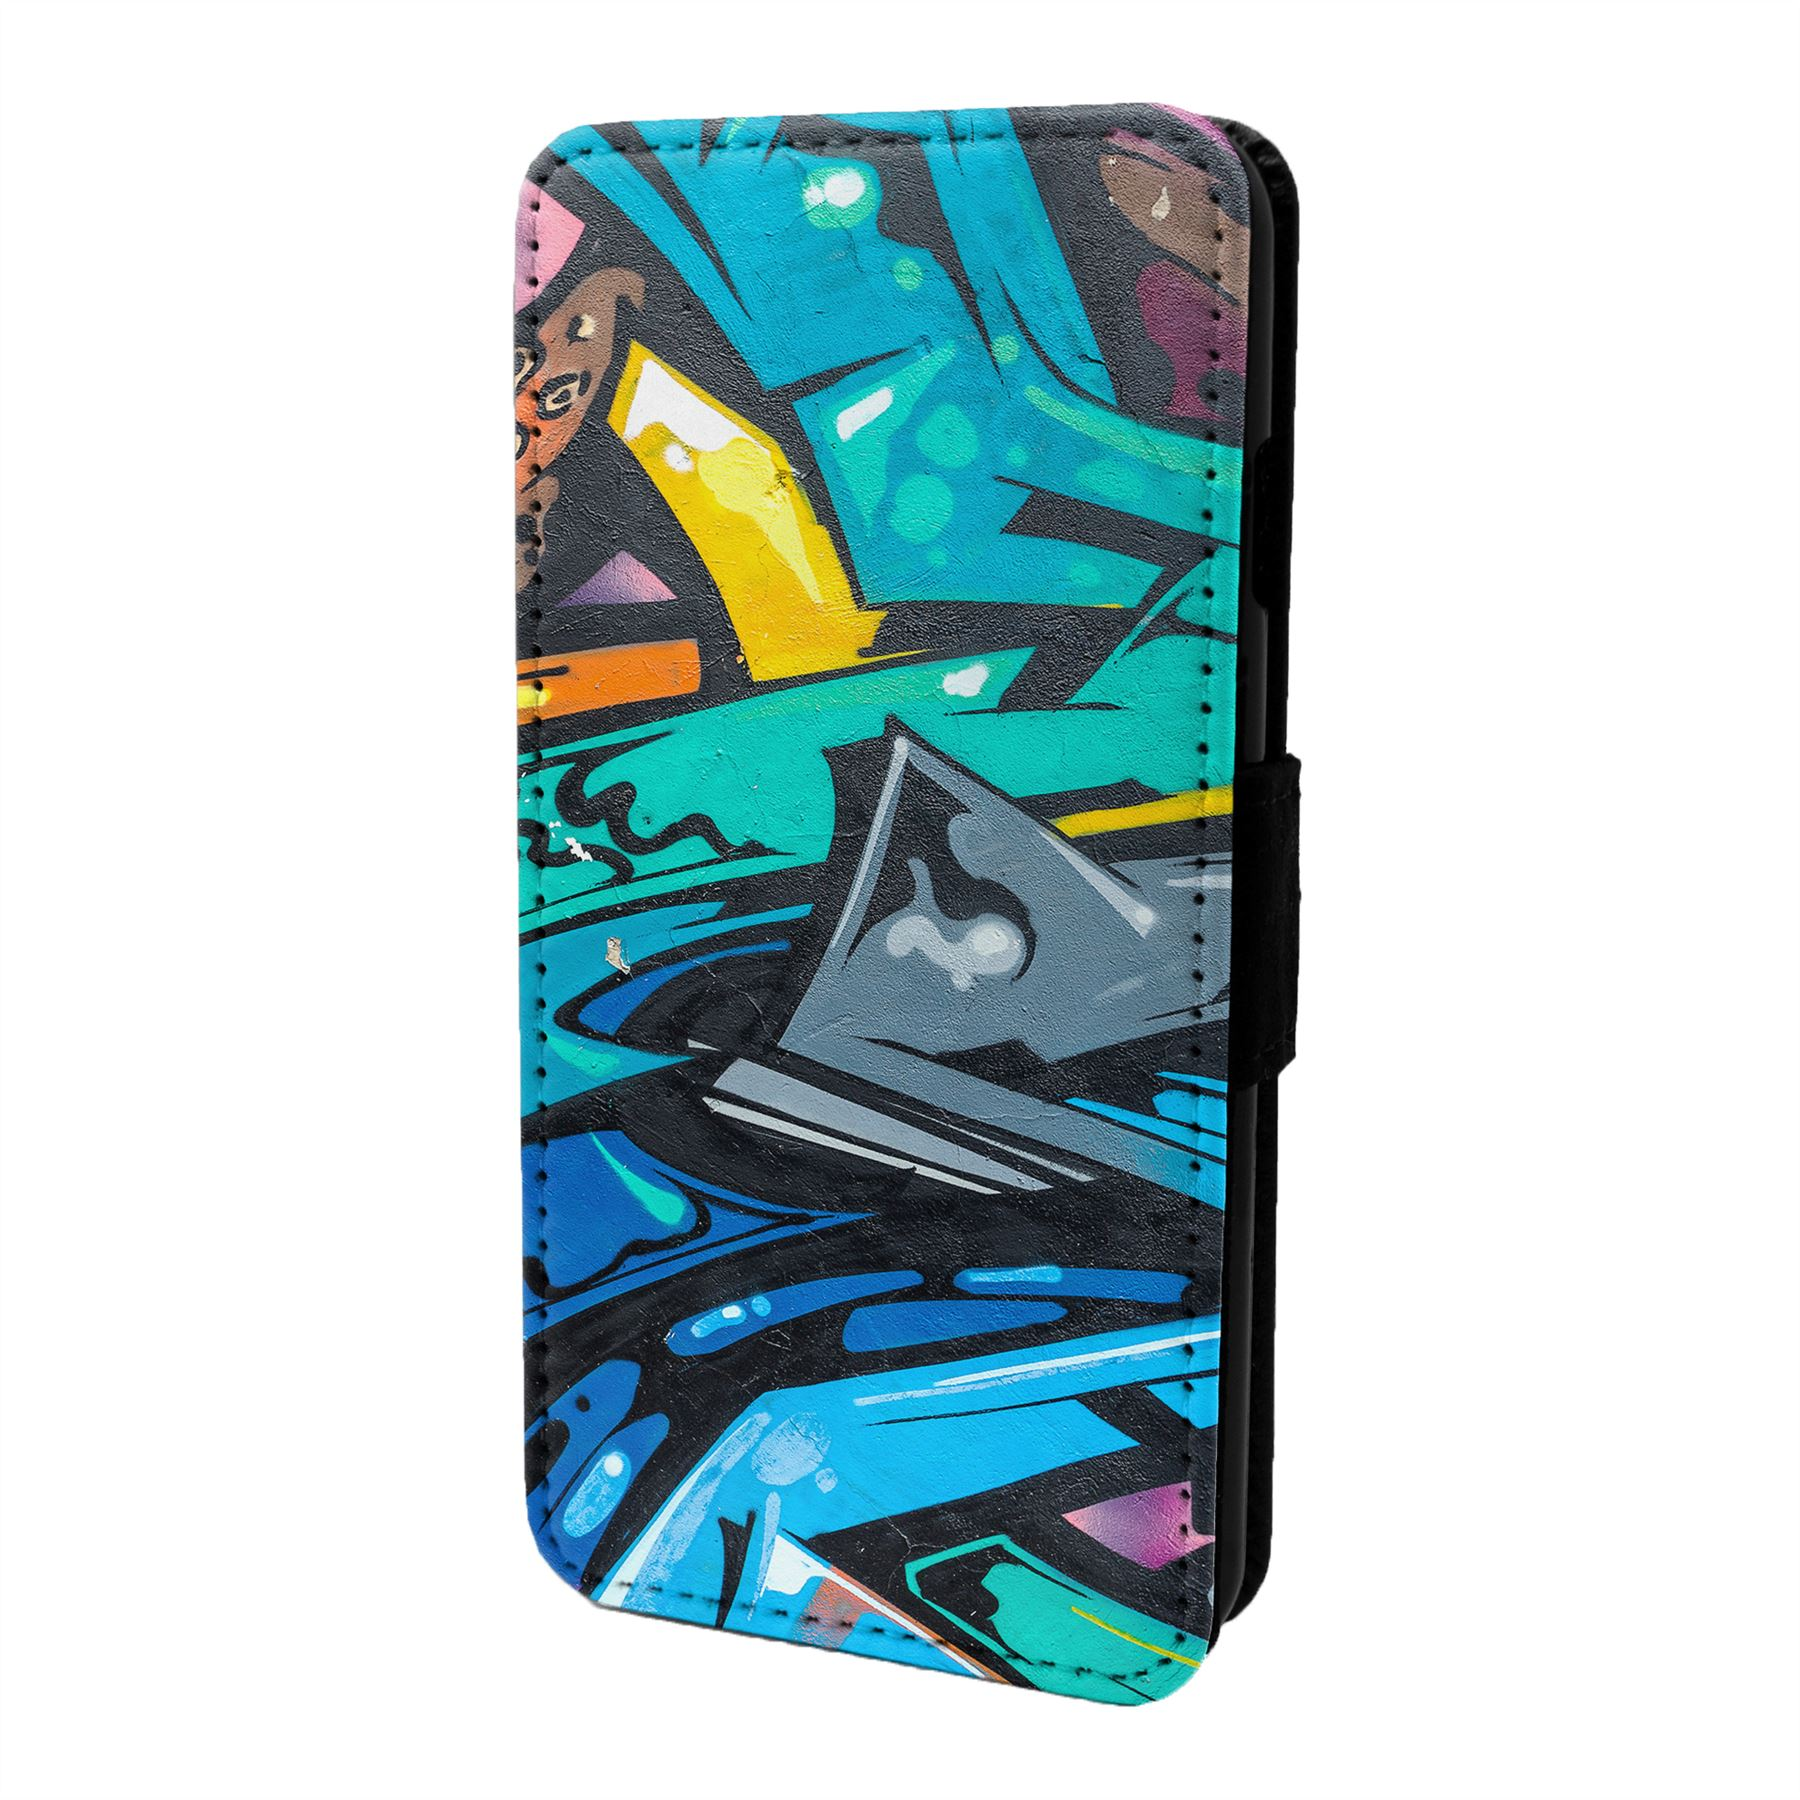 Graffiti-Art-Etui-Rabattable-pour-Telephone-Portable-S6774